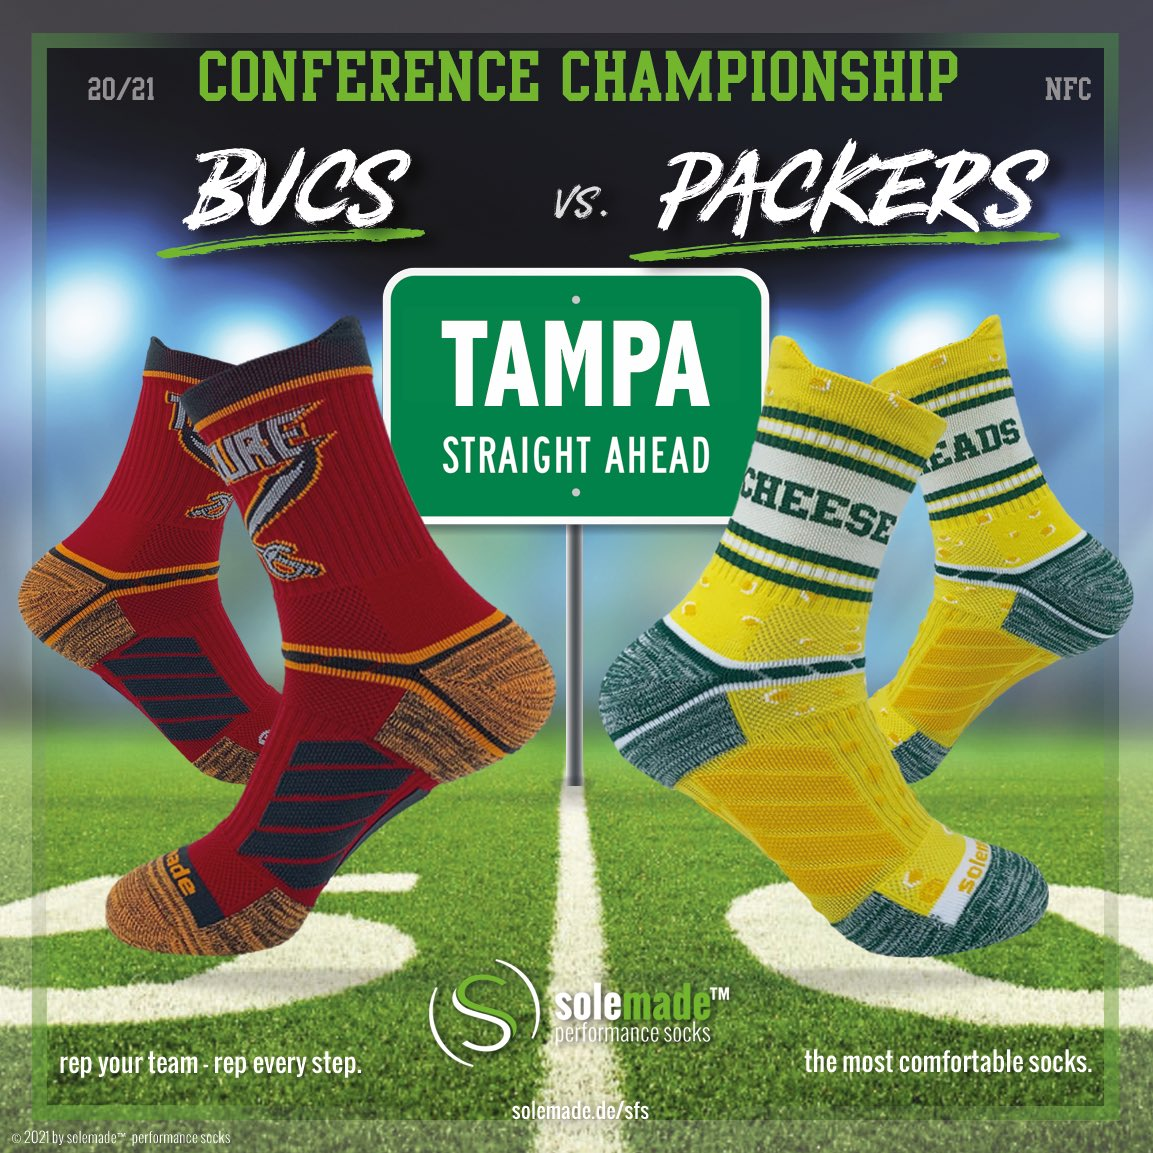 #solemadefootballstyles - #TBvsGB & #BUFvsKC - who you with? Rep your team and rep every step:  - #bills #chiefs #buccaneers #packers #afcchampionshipgame #solemade #conferencexhampionshipgame #rannfl #rannflsüchtig #solemade #nfcchampionshipgame #SBLV #NFL